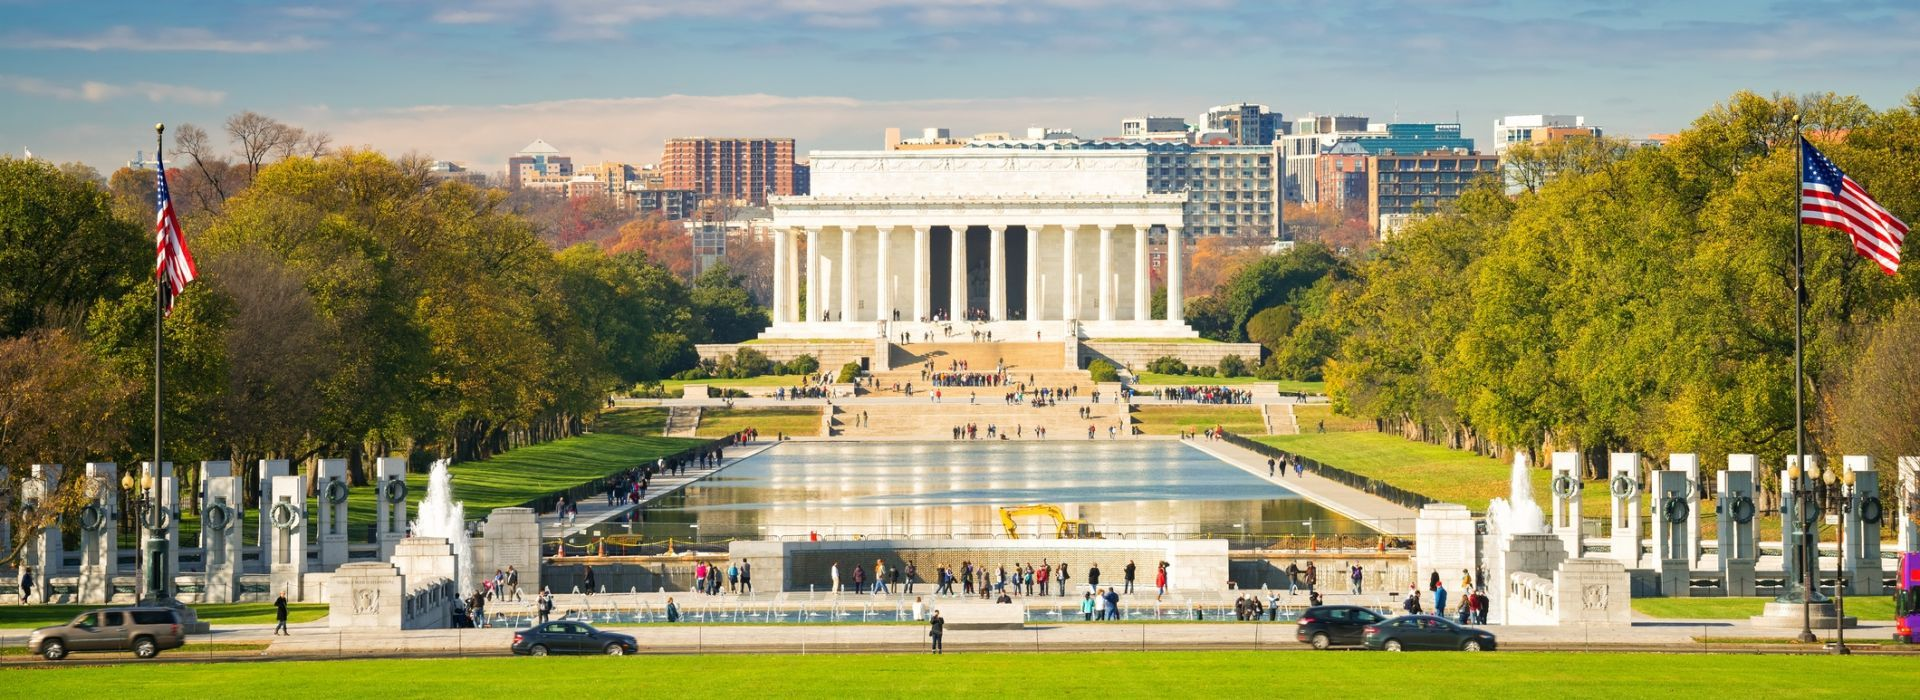 Cultural, religious and historic sites Tours in Washington D.C.